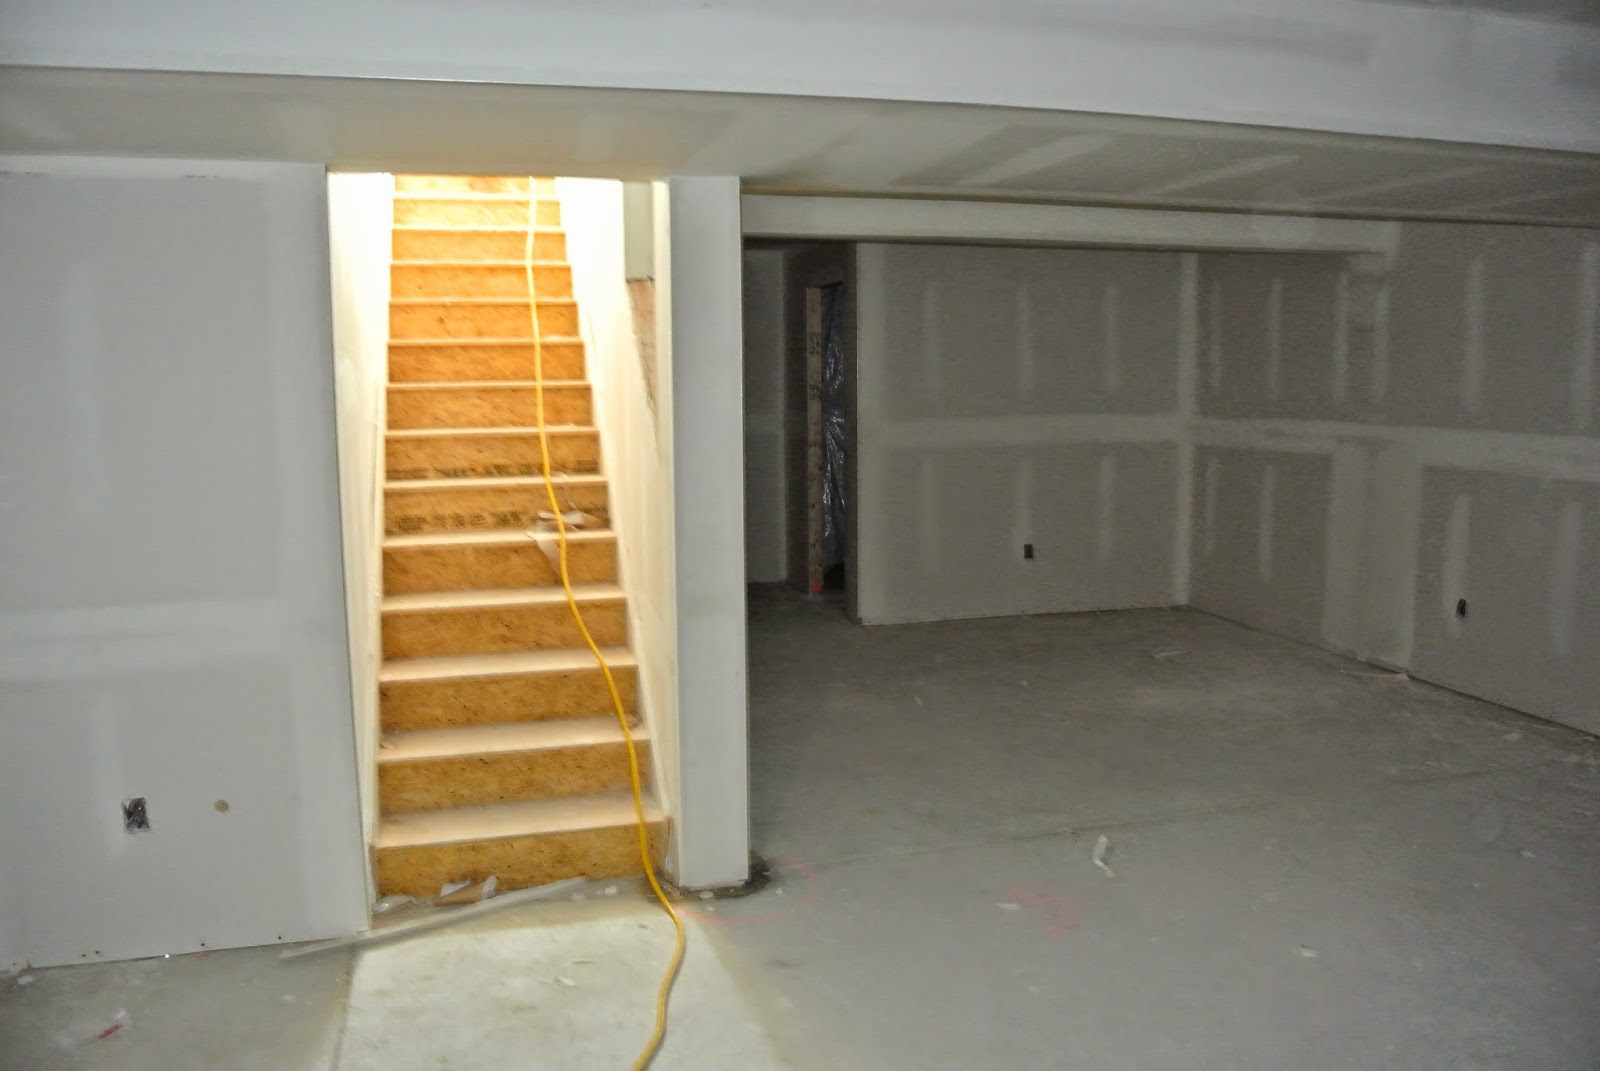 Our Path To Florence Building A Ryan Home Drywall Installation - Drywall for basement